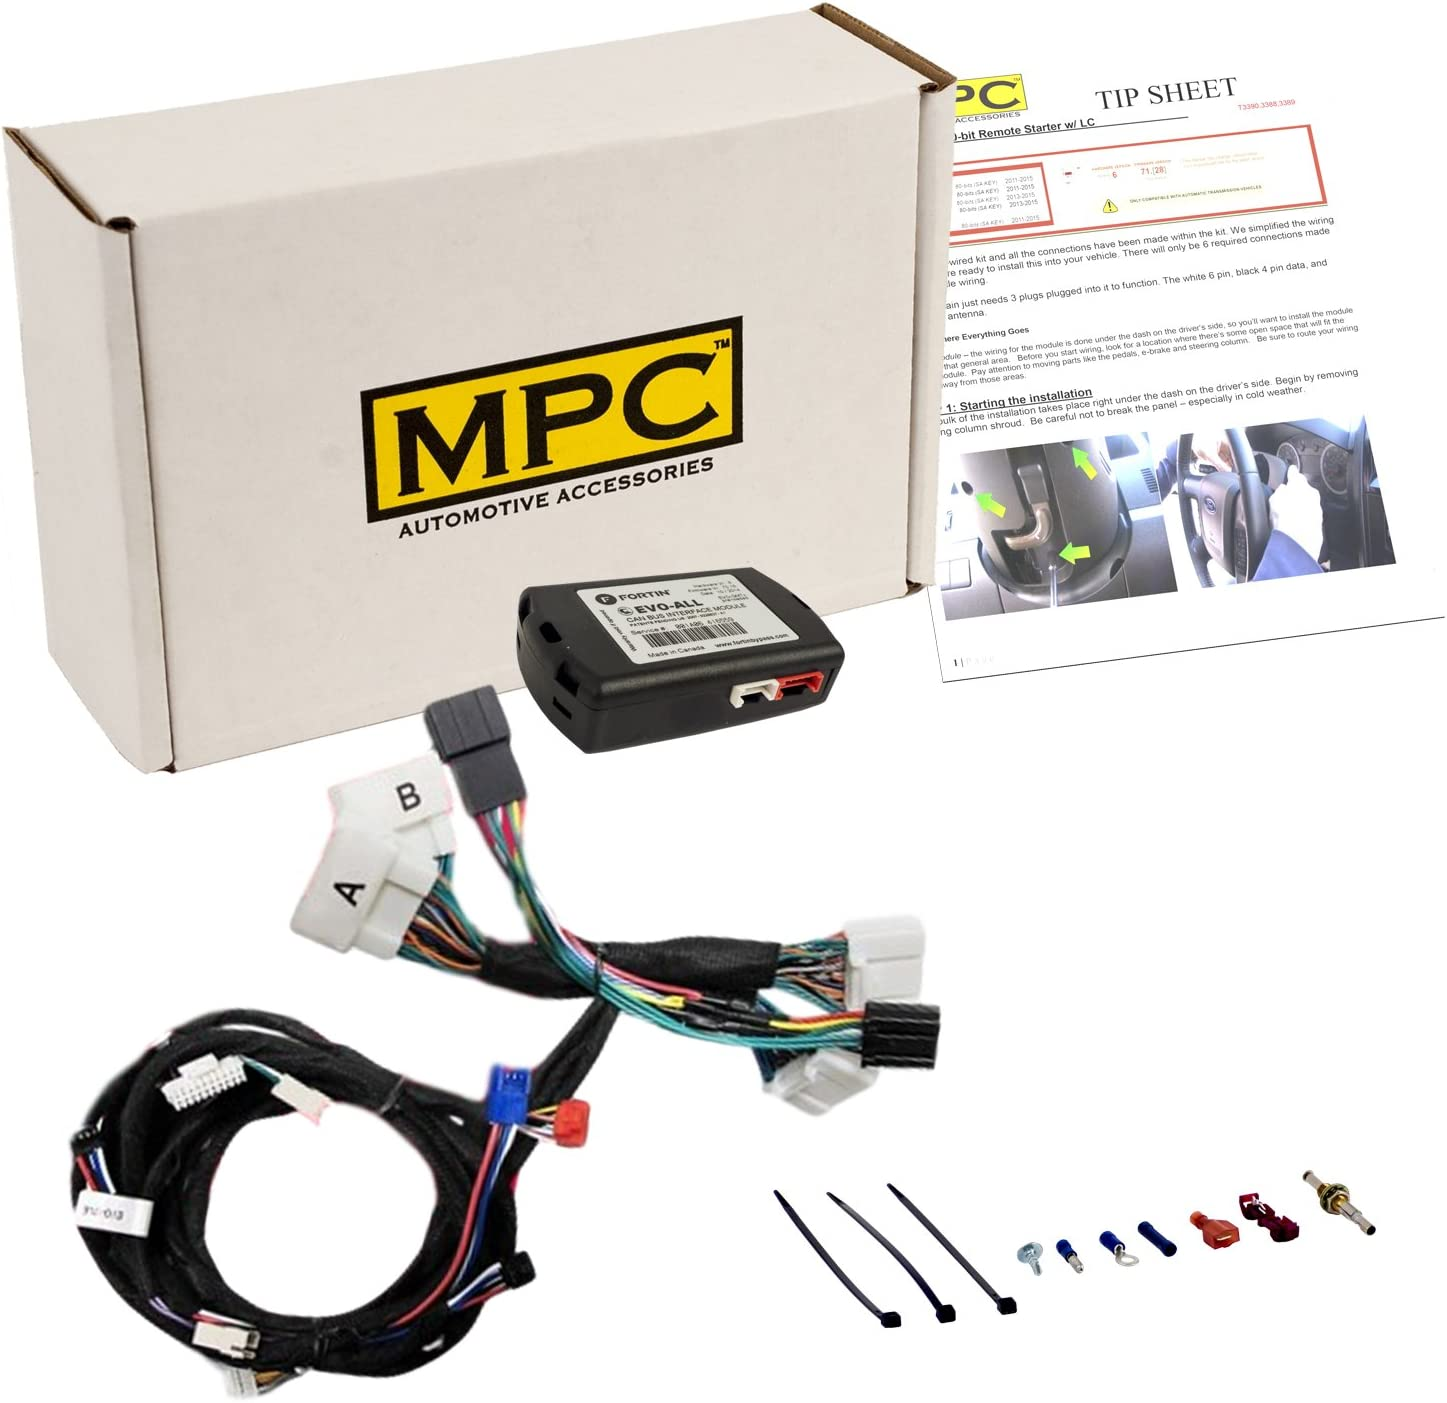 Extended Range Remotes 2 MPC Complete 1-Button Remote Start Kit for 2009-2010 Toyota Corolla